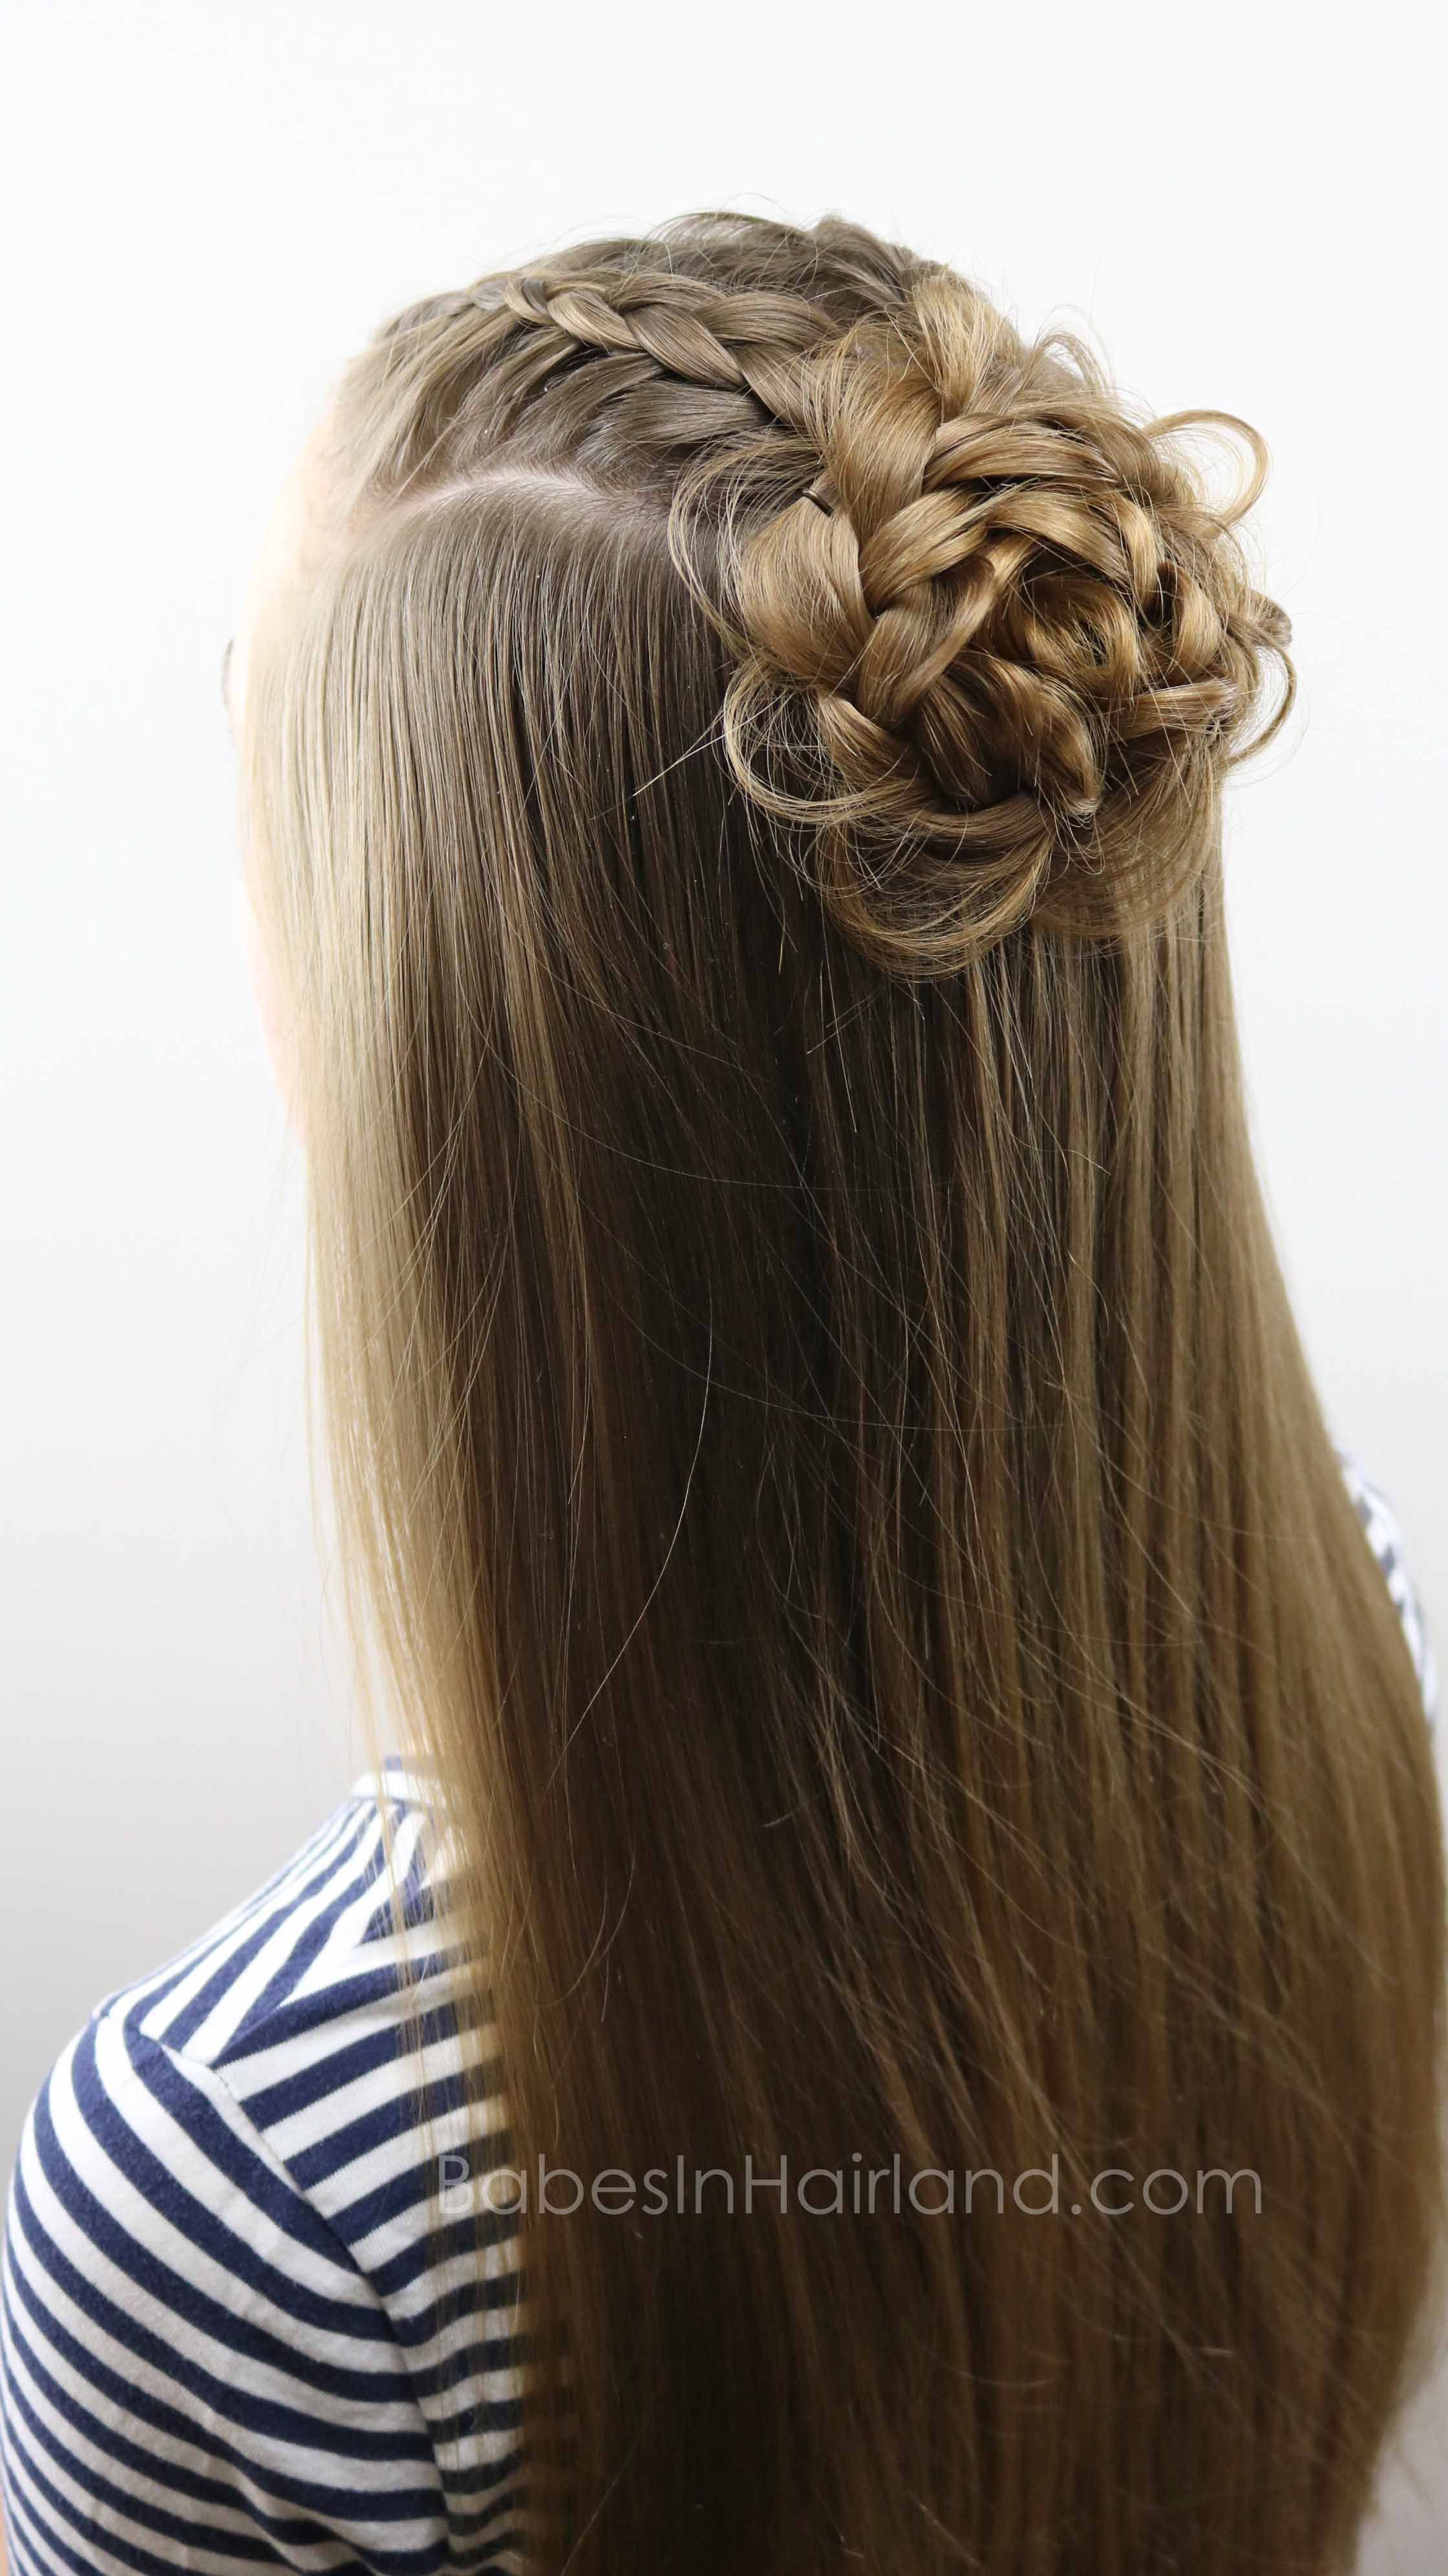 Easy Hairstyles With Braids Start With 2 Basic Dutch Braids And Create 5 Different Cute And Easy